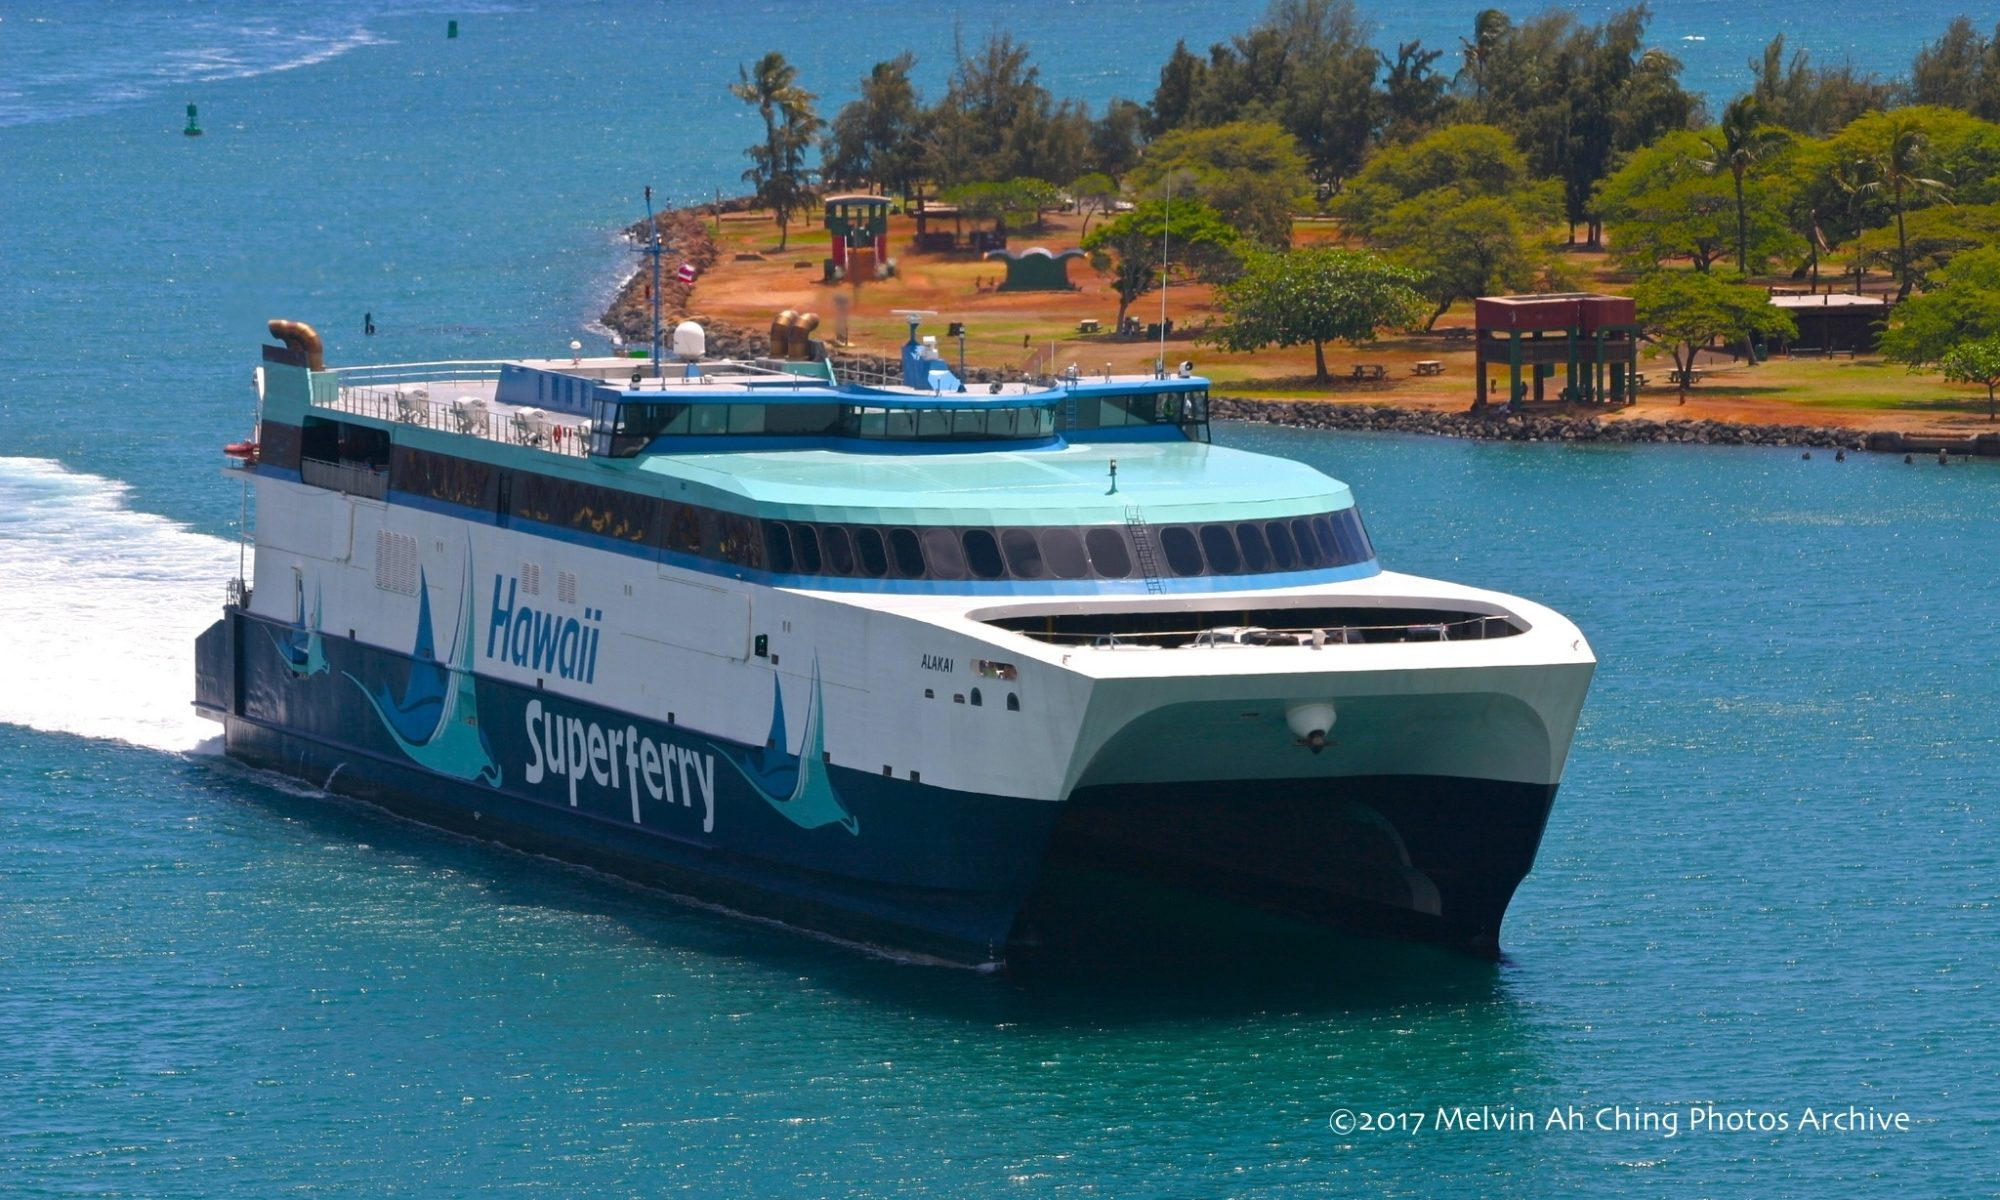 Hawaii Superferry 2007